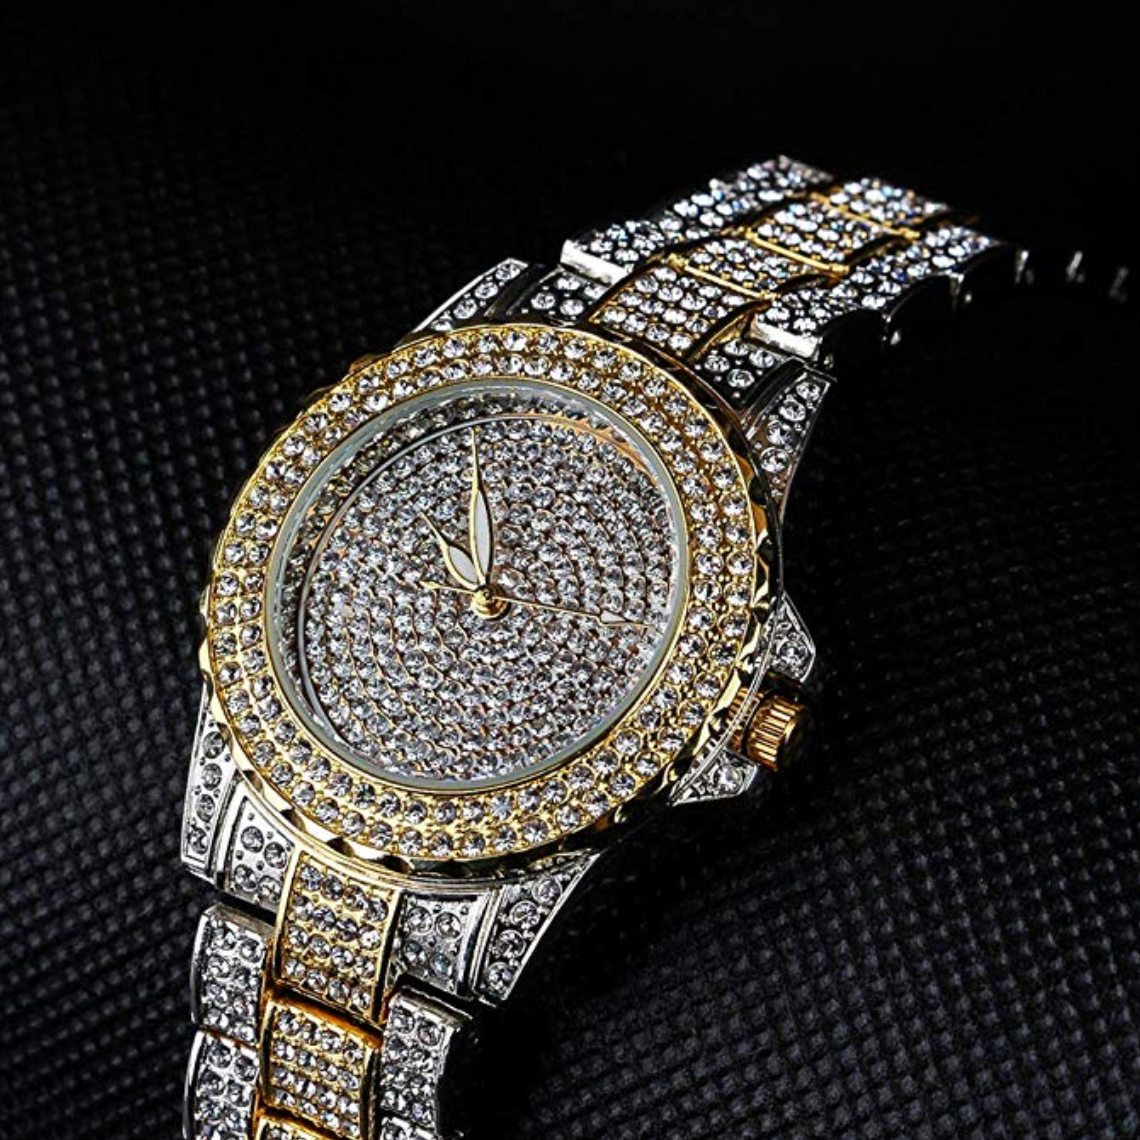 2-Tone Gold Silver Diamond Watch Bust Down Hip Hop Jewelry Watch Iced Out Watch Bling